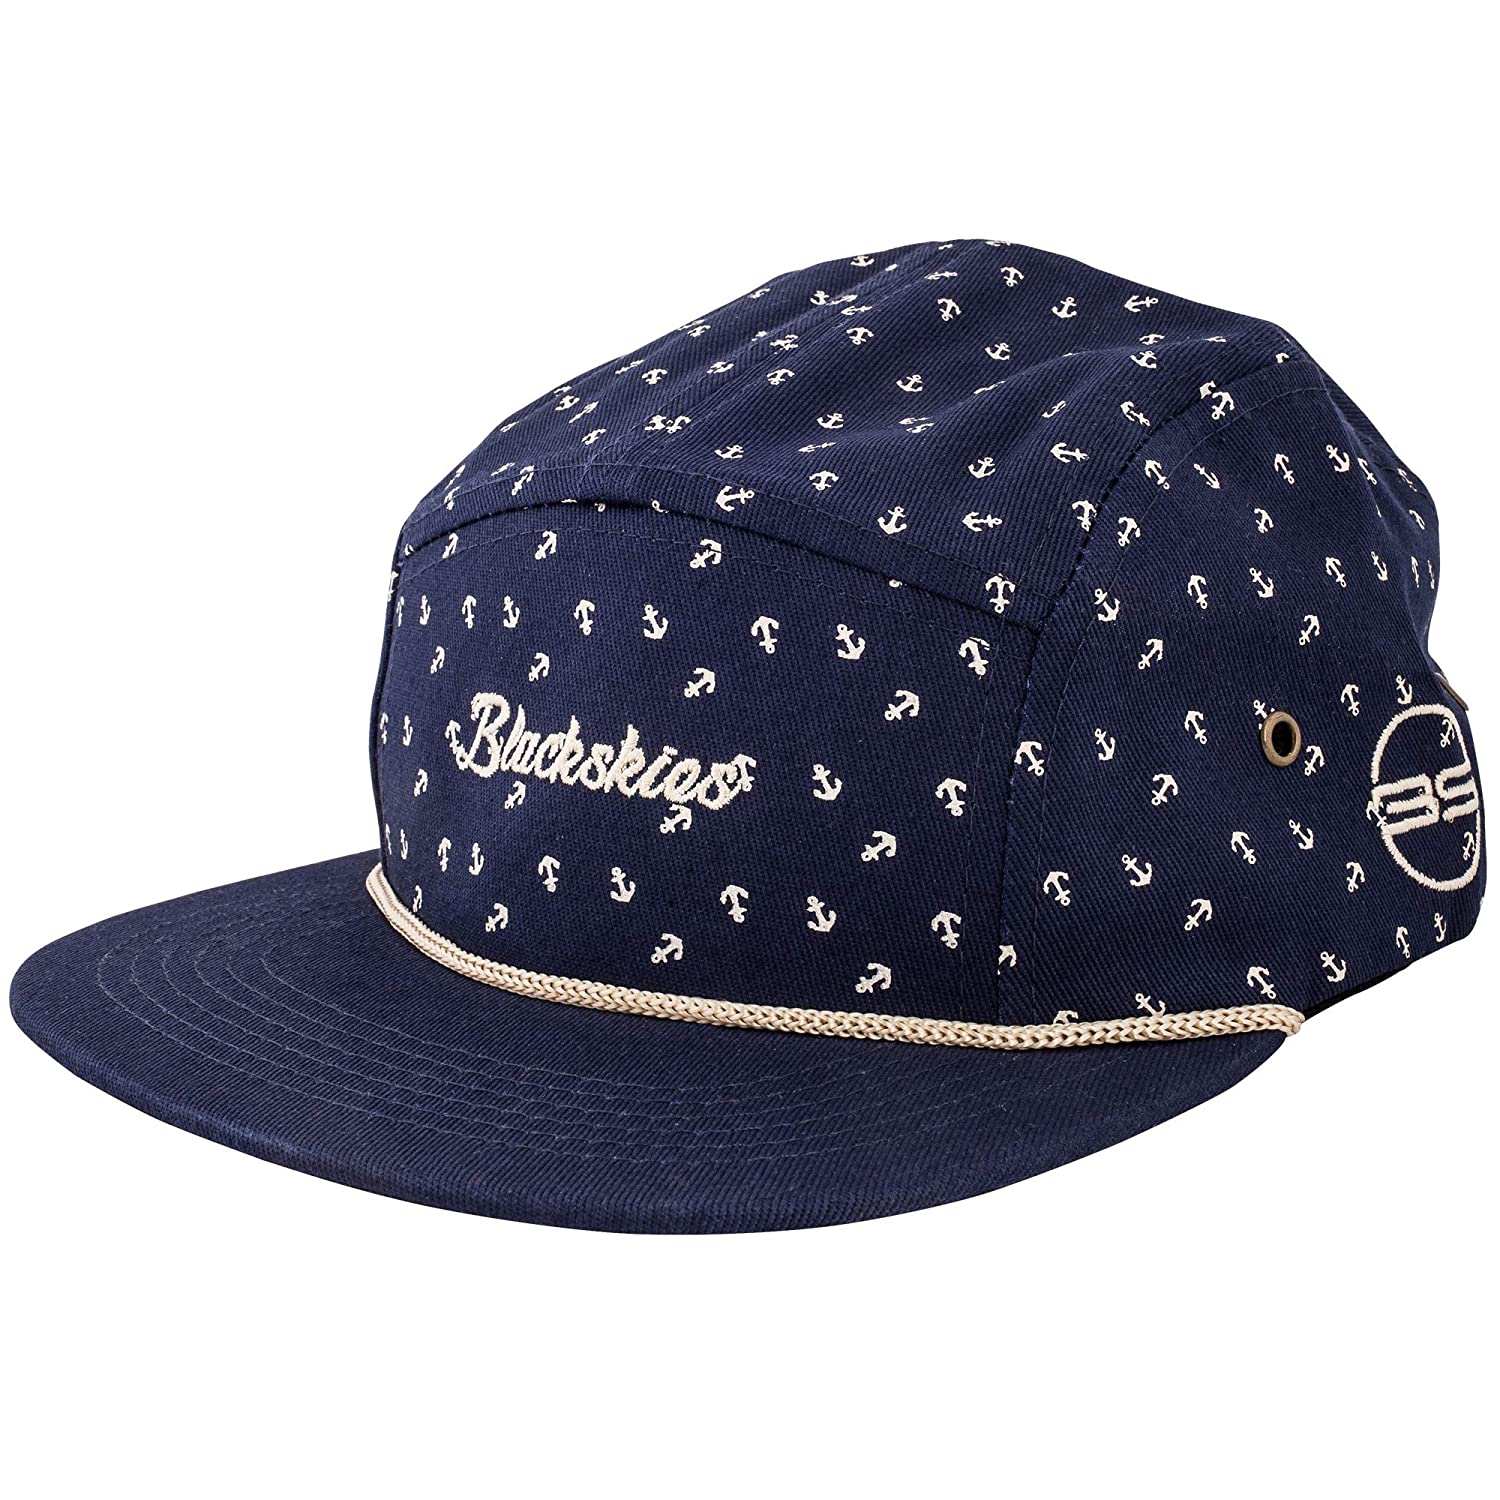 Blackskies Crimson 5-Panel Cap Camp Women Men Baseball Cap Cap Surfers Skaters Snapback Strapback Kord at Amazon Mens Clothing store: